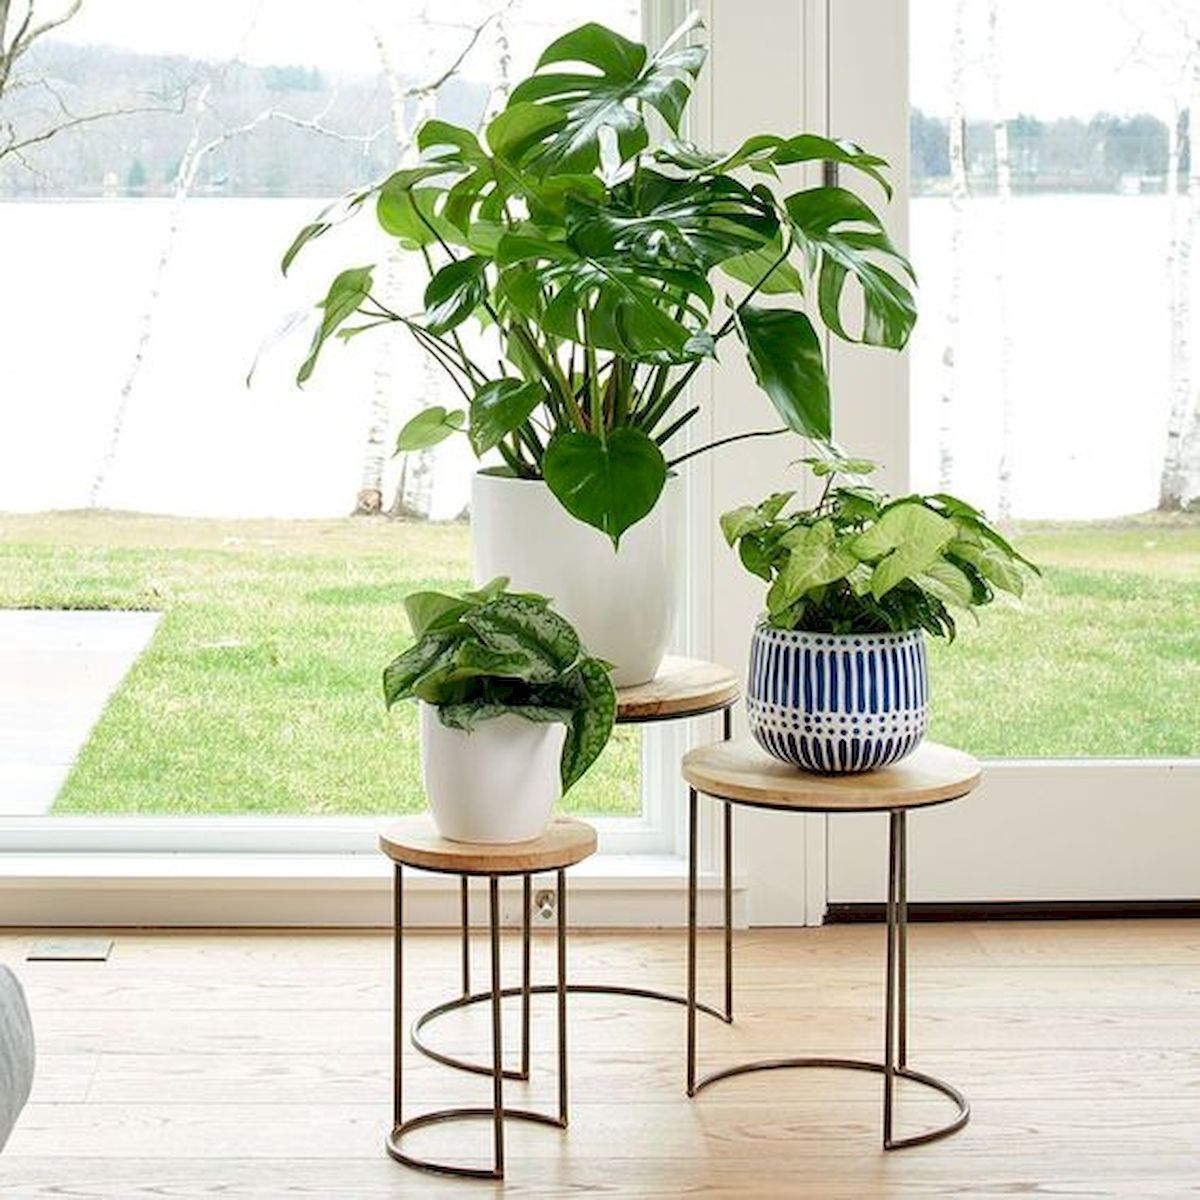 50 Best Indoor Garden For Apartment Design Ideas And ... on Hanging Plants Stand Design  id=68262